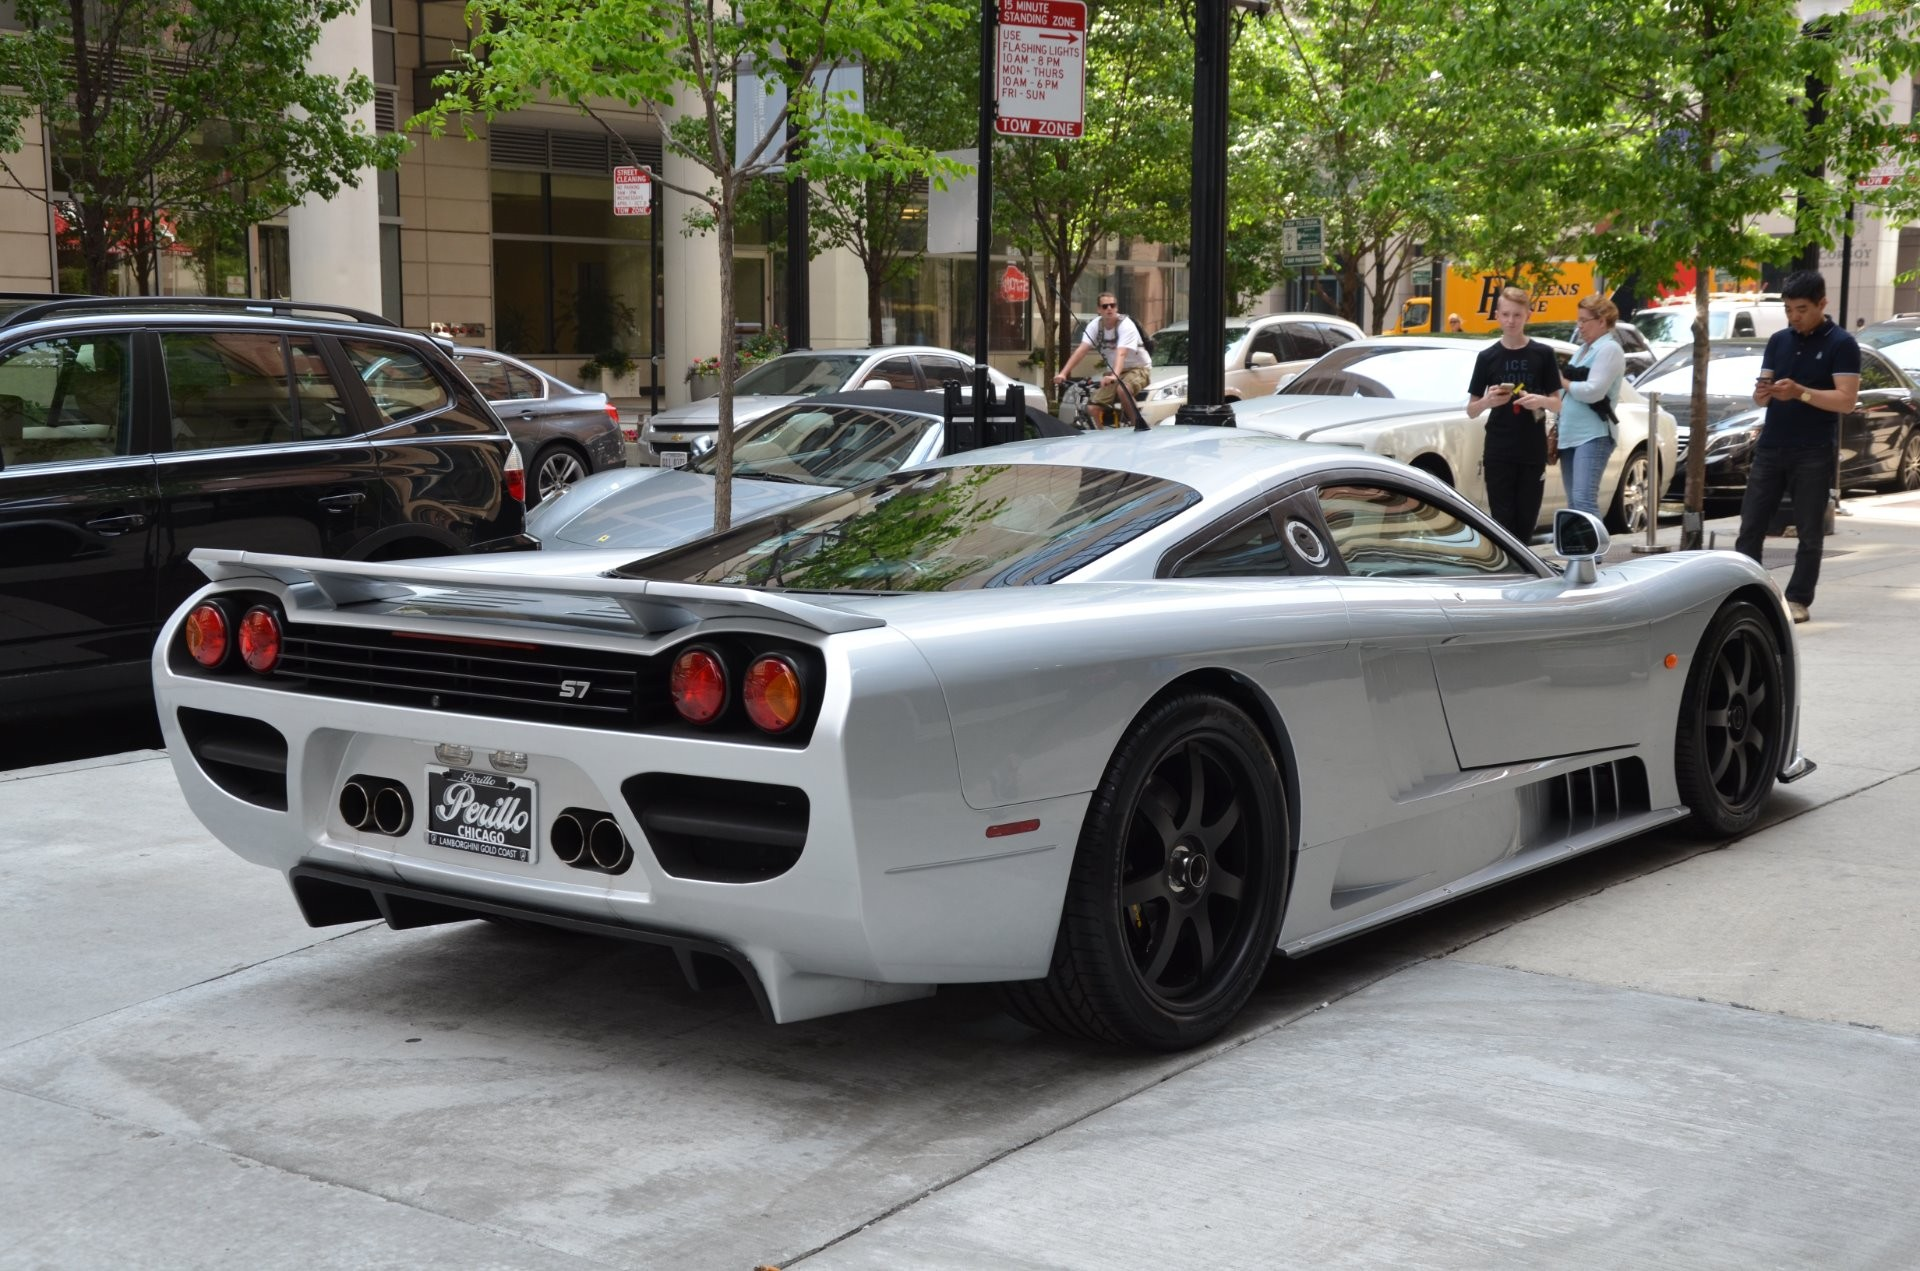 Saleen S7 For Sale >> S7 (03-024) OFFERED BY GOLD COAST AUTO GALLERY